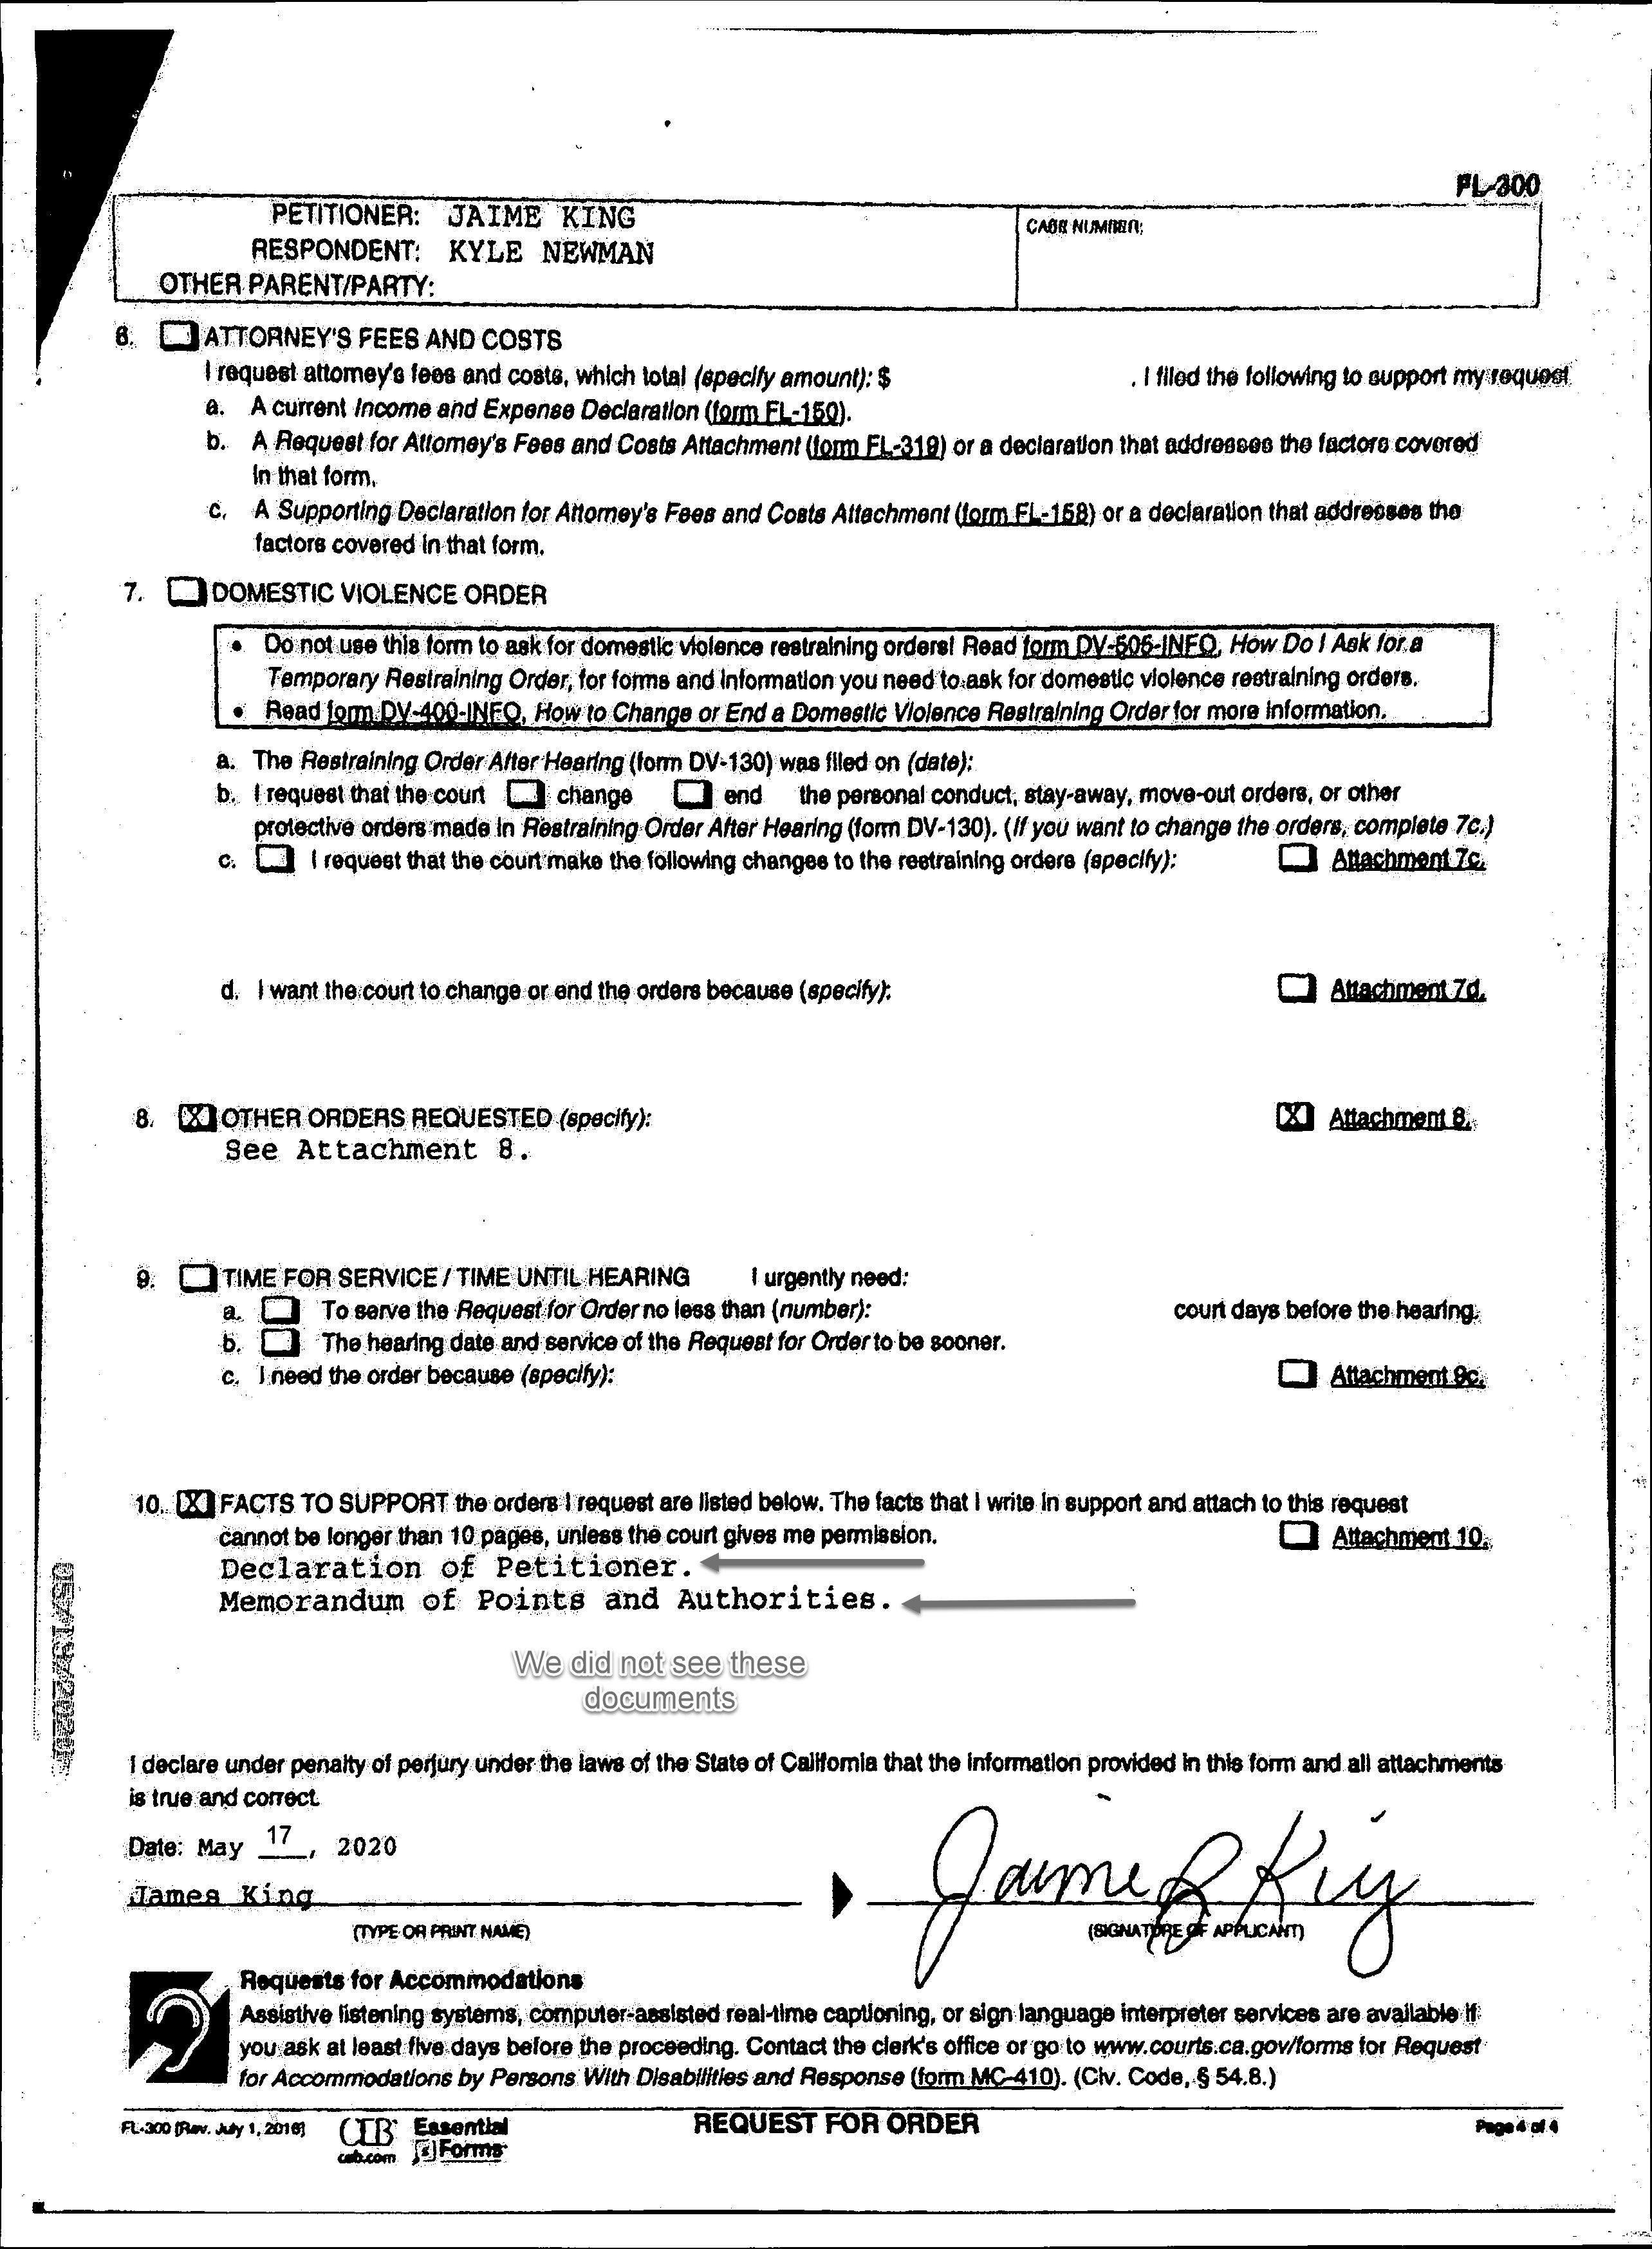 page four of Jaime King's ex parte application